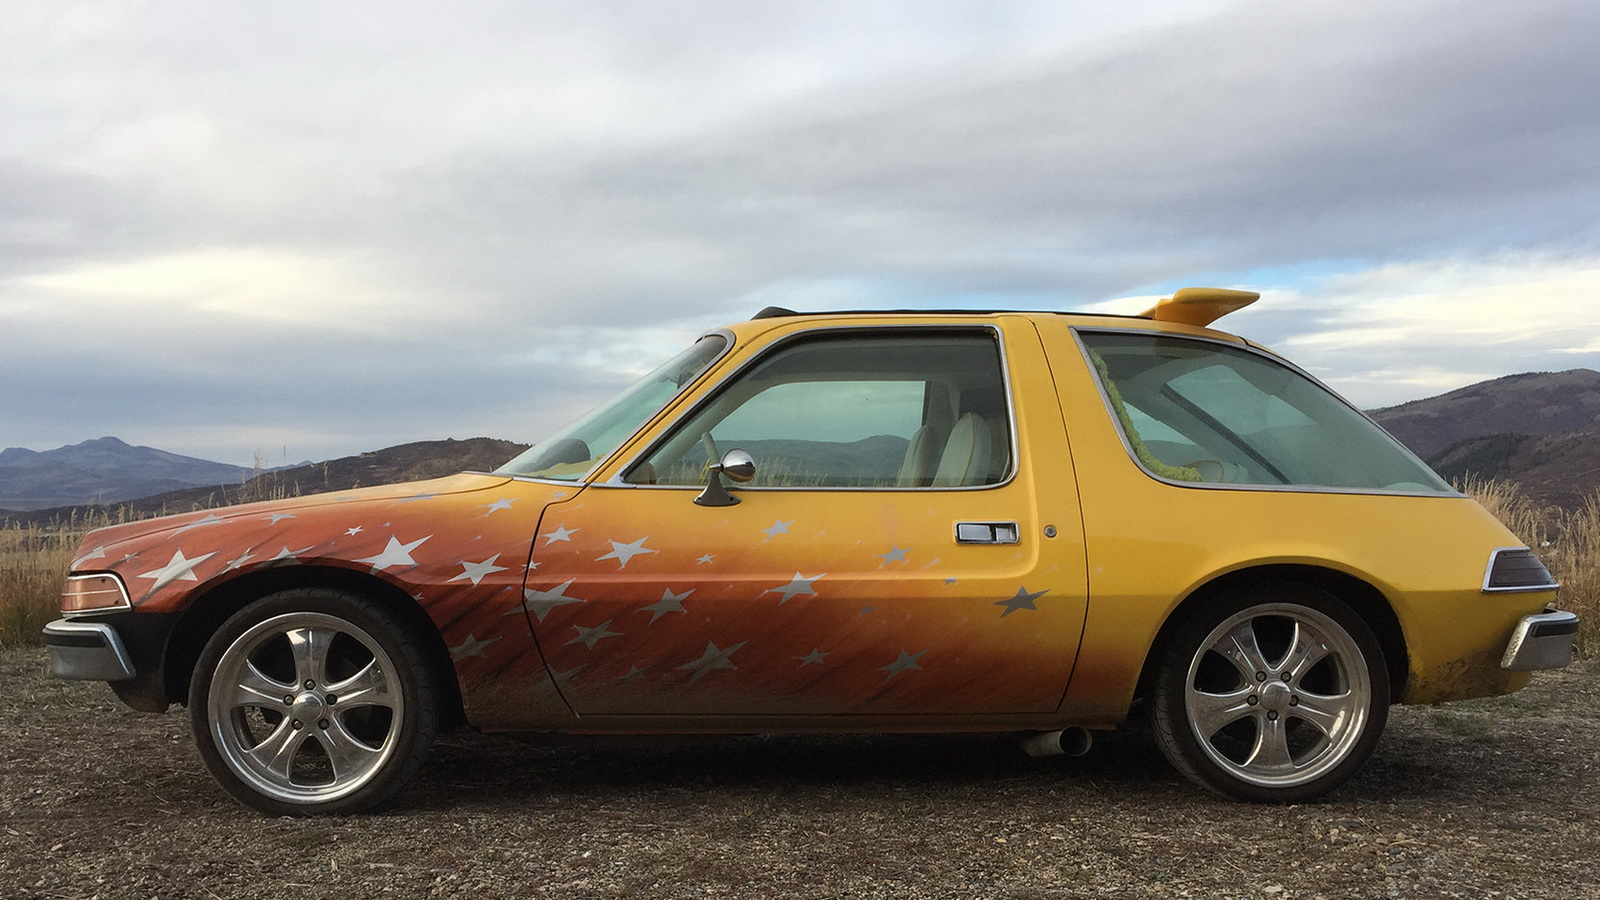 AMC_Pacer_Pimp_My_Ride_02